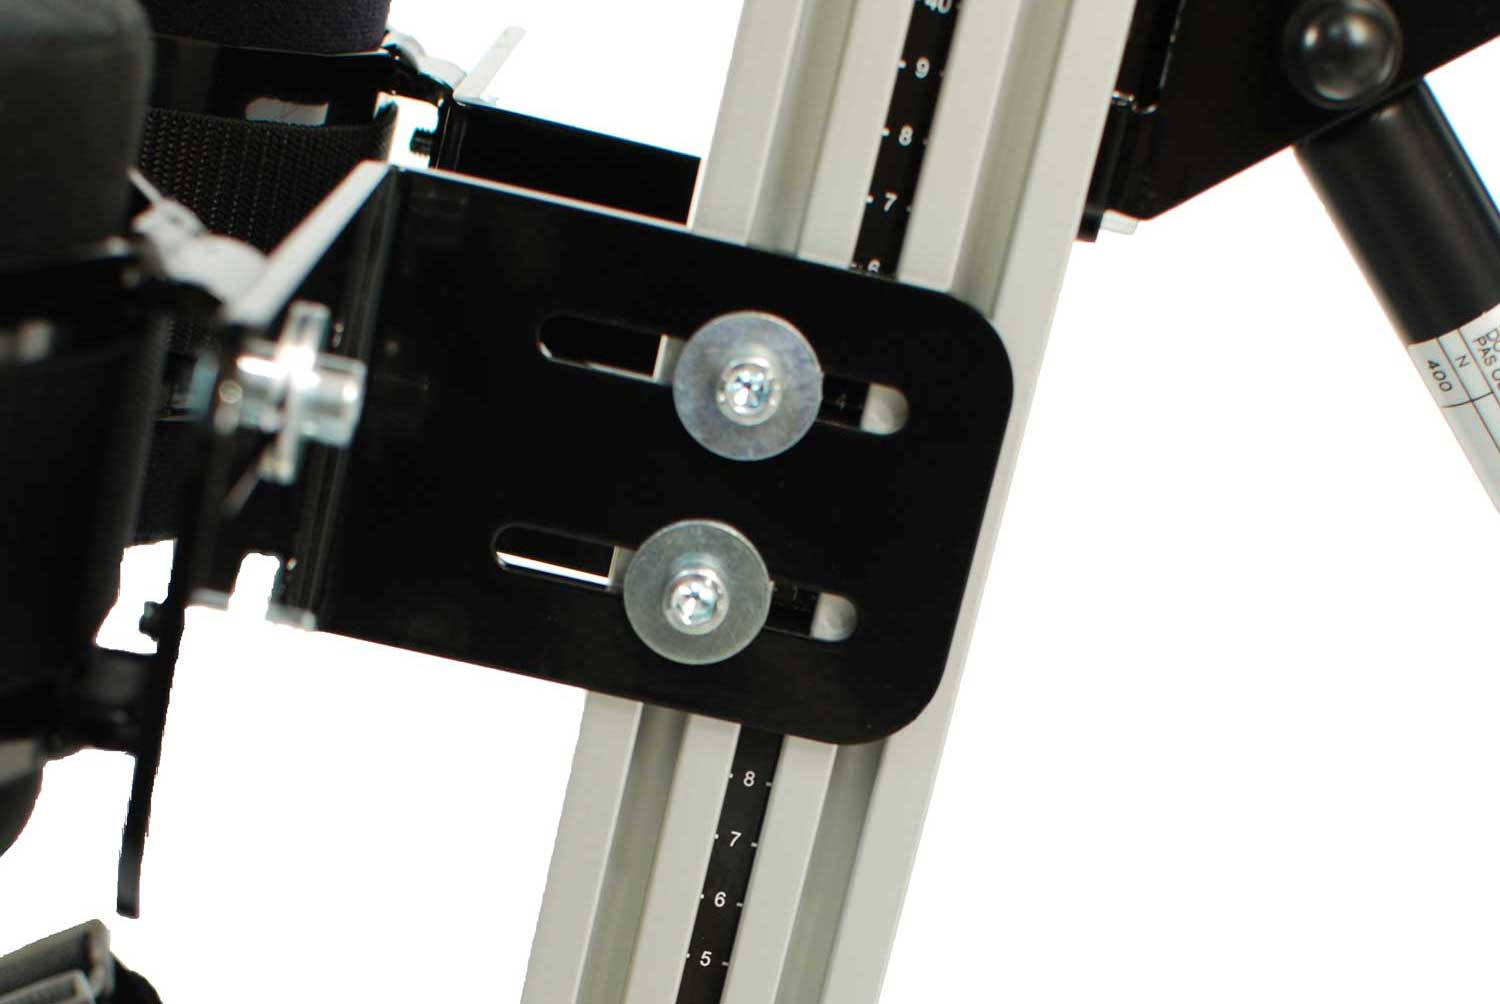 Measure tape on upright extrusion